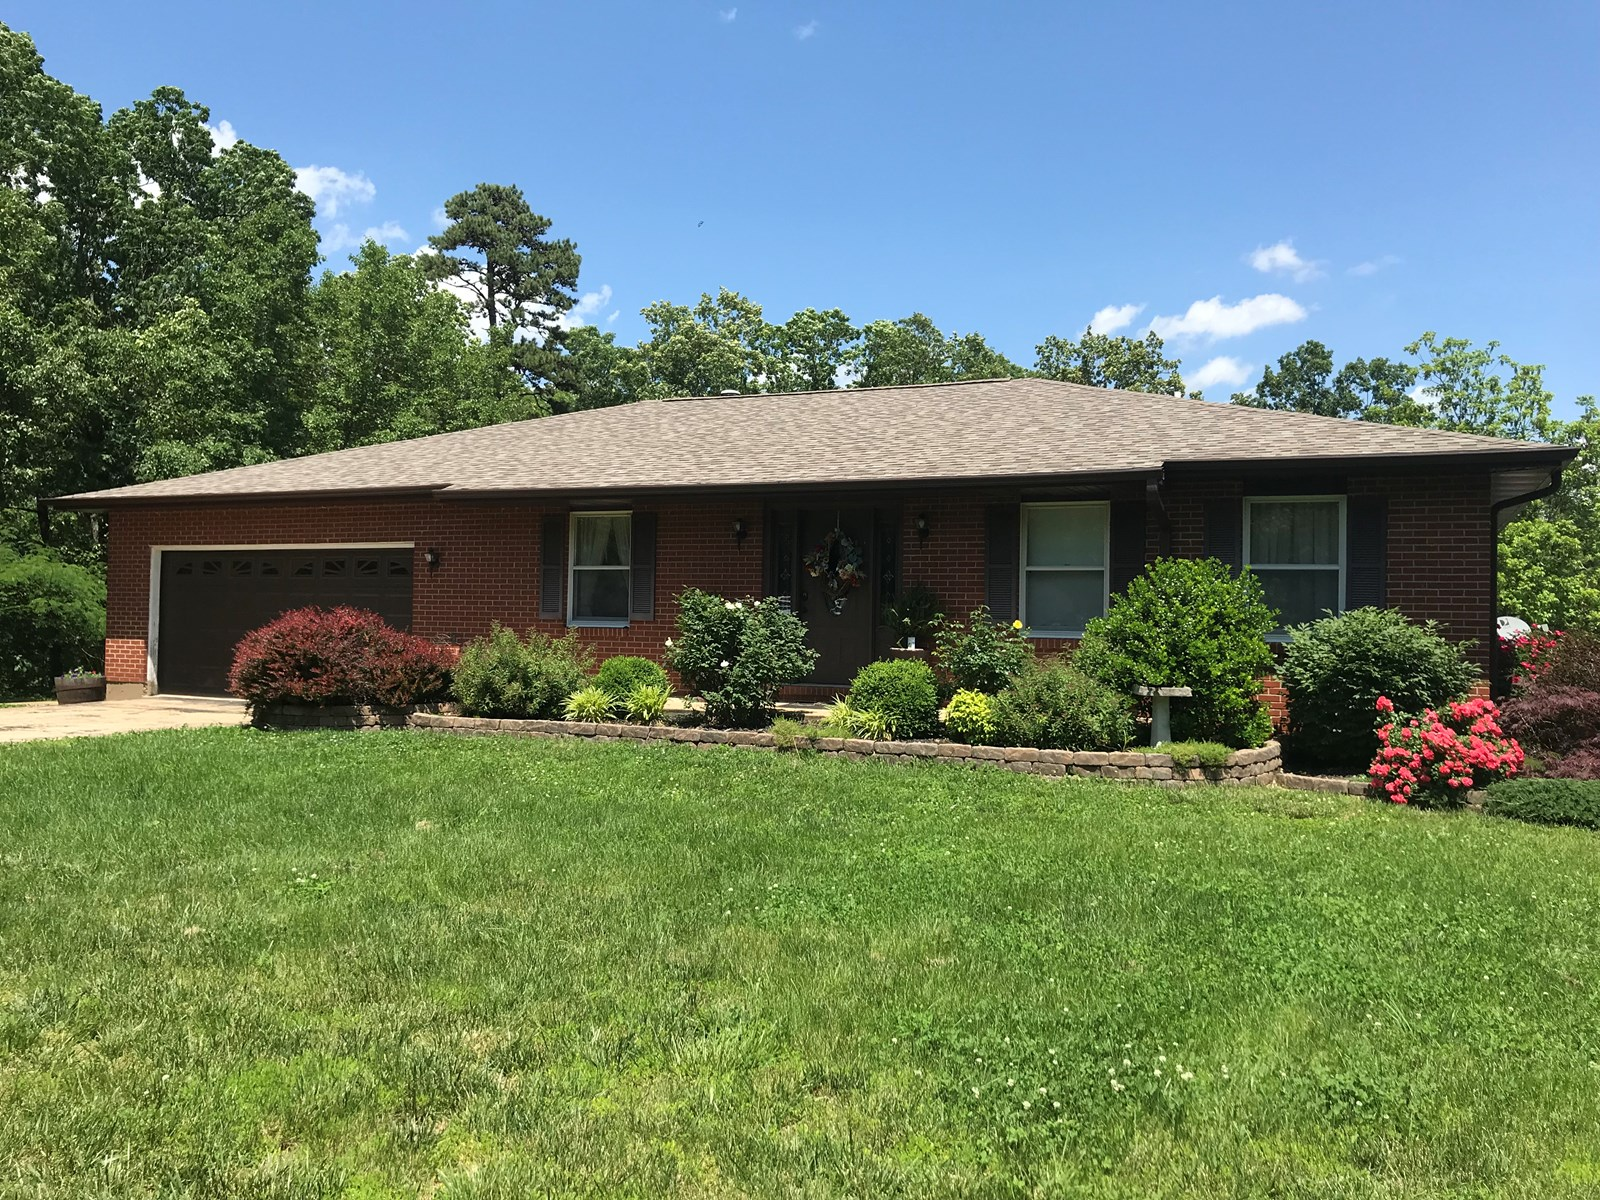 Brick Home on 5.5 +/- Acres